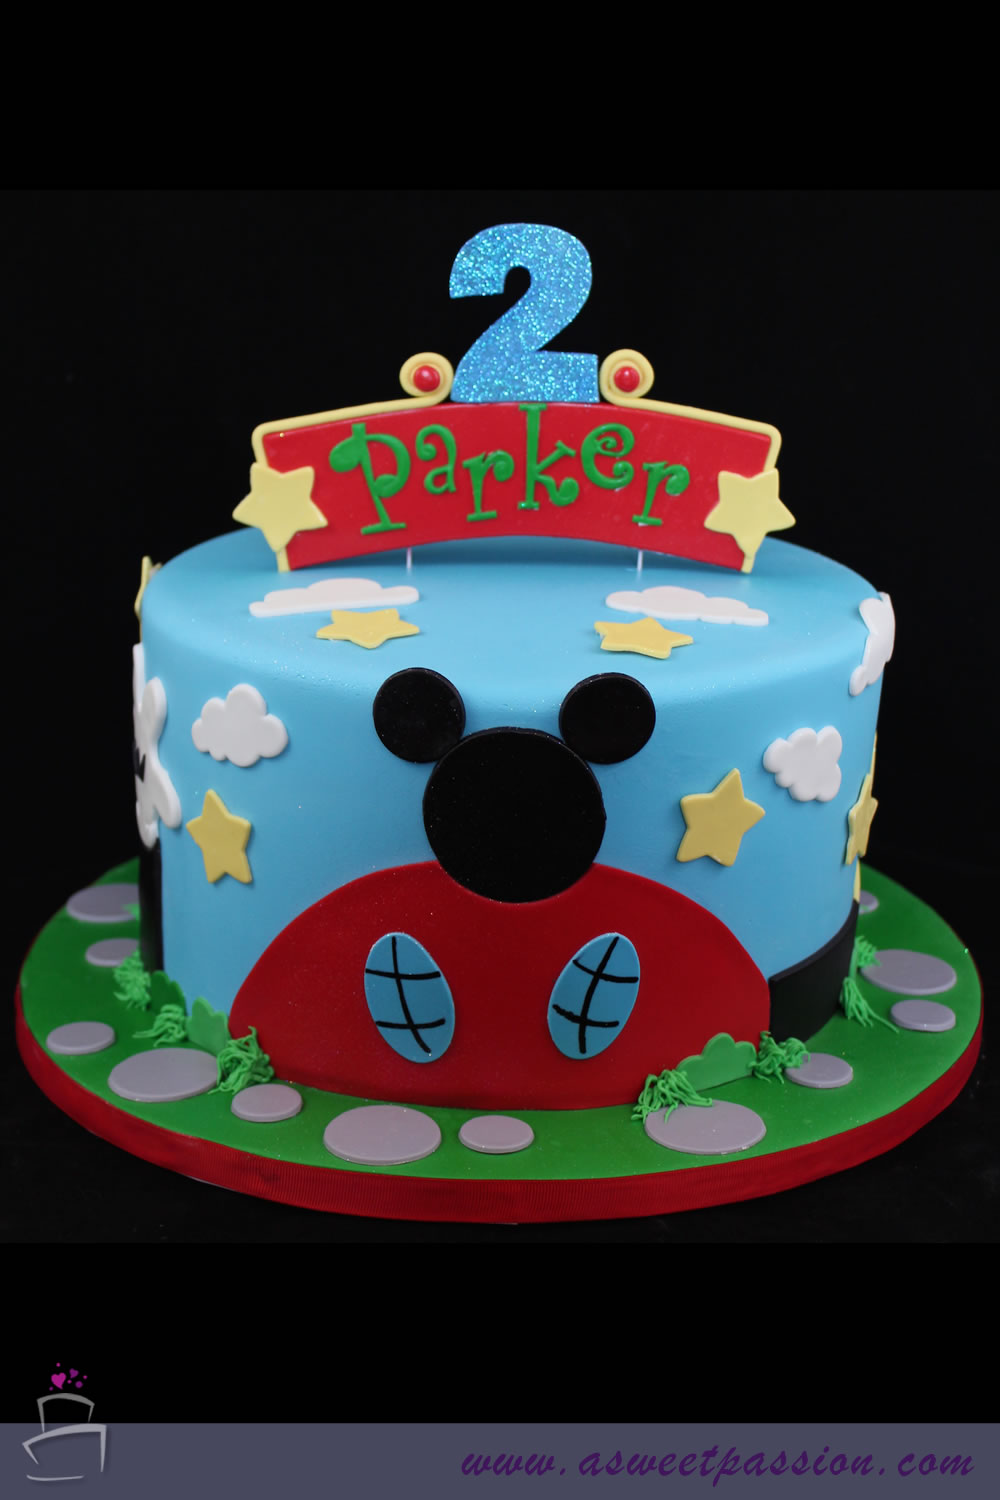 Groovy Mickey Mouse Clubhouse Cake Sweet Passion Cakery Funny Birthday Cards Online Hendilapandamsfinfo